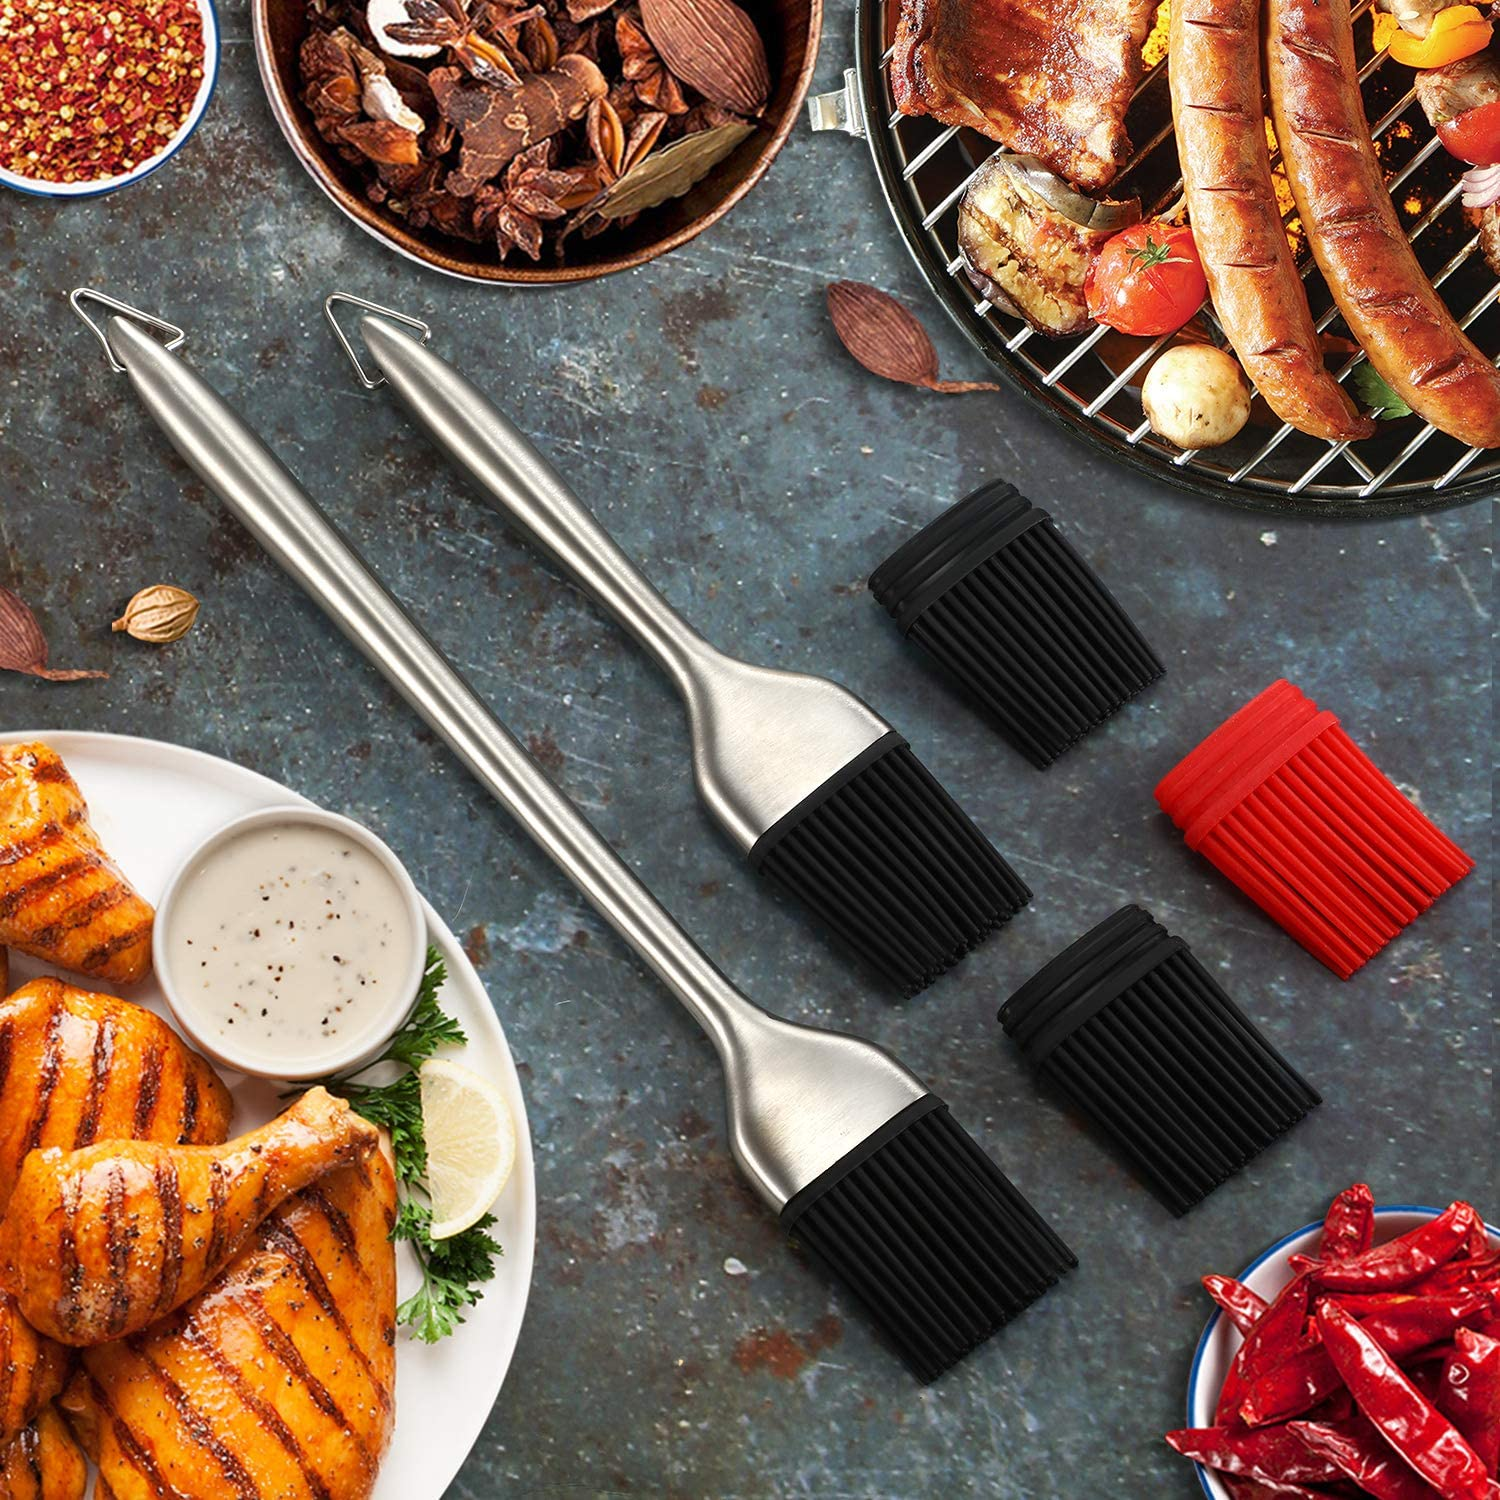 8 Pieces Stainless Steel Replaceable Basting Pastry Brush Set Dough Scraper Duty Cooking Oil Butter Sauce Turkey Baster for Marinades BBQ Utensil Desserts Grilling Brush